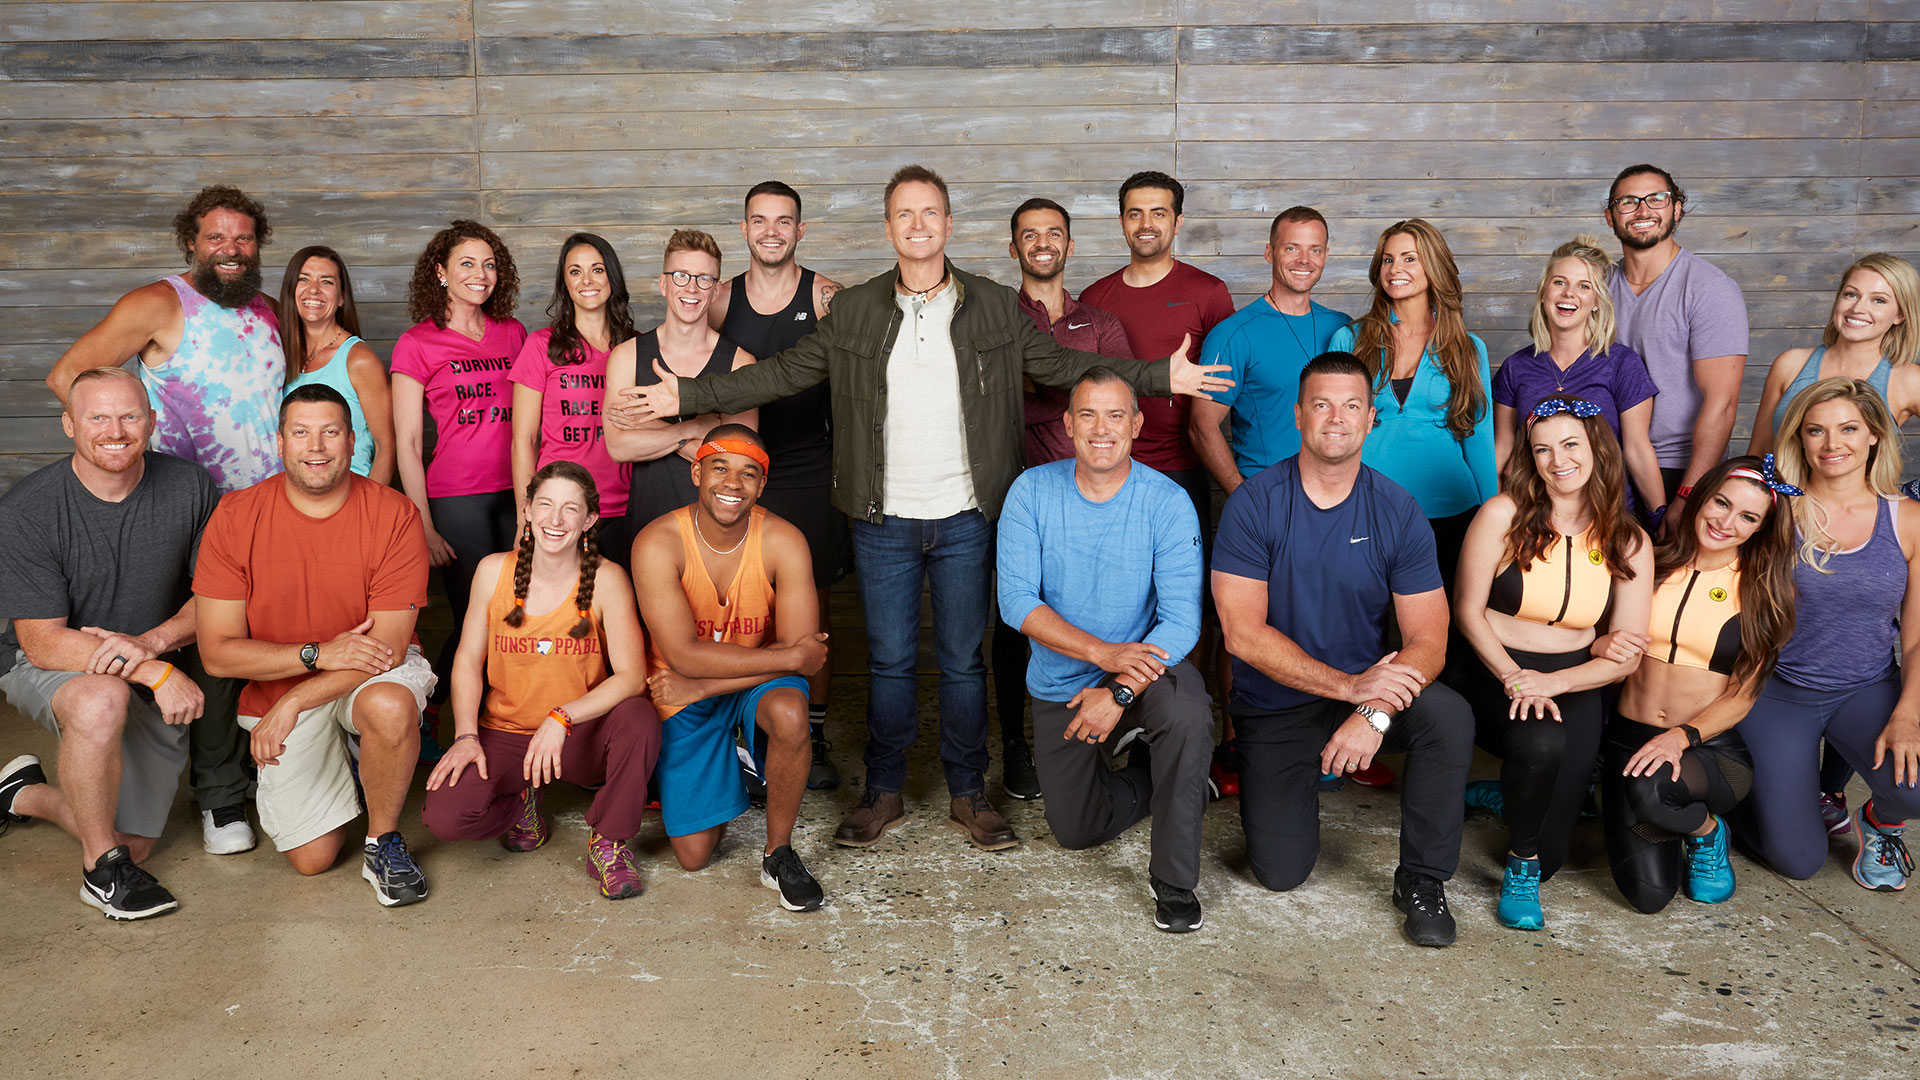 Who's In The Cast Of The Amazing Race Season 31? - The Amazing Race